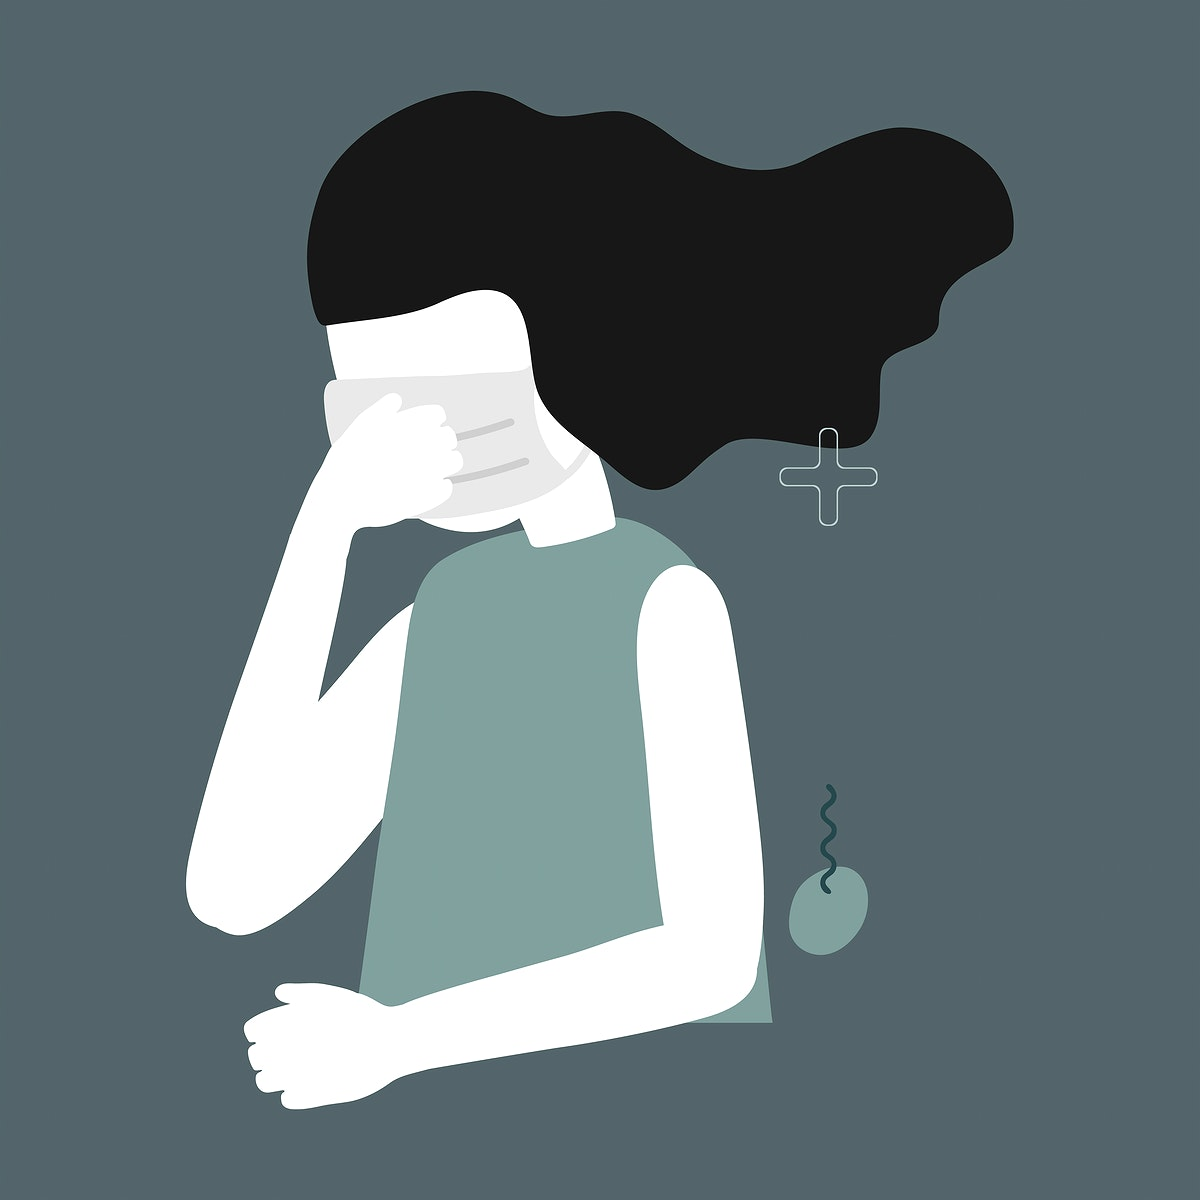 Covid 19 infected woman wearing face mask and coughing vector